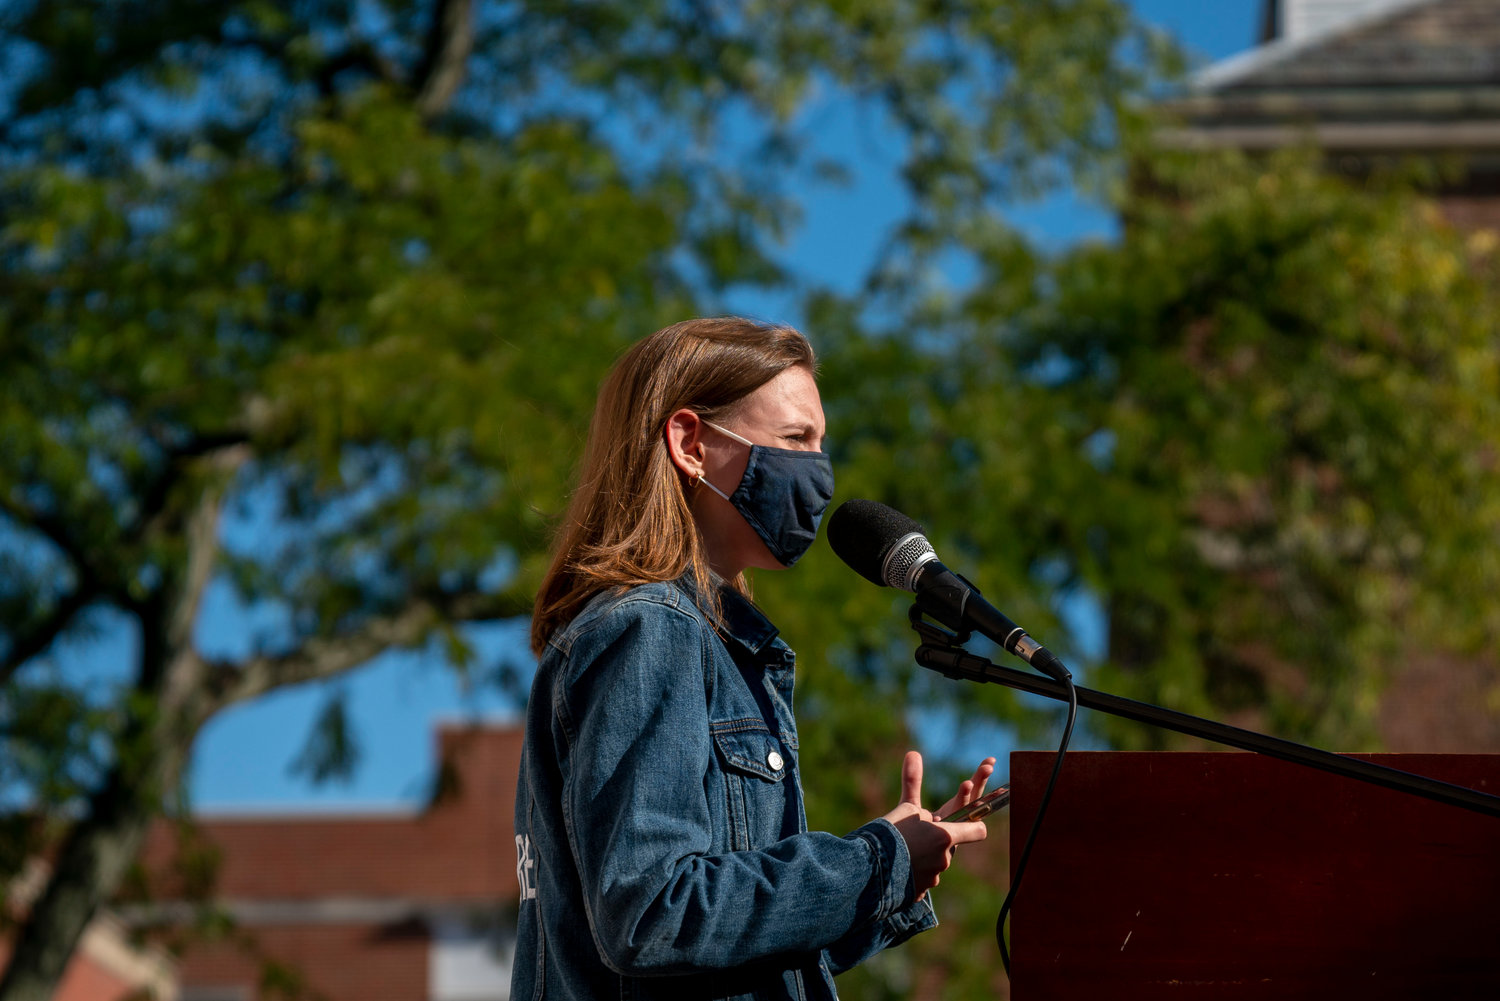 Alexandria Villaseñor, who spoke at Manhattan College's 'shoe strike' Sept. 22, is a co-founder of U.S. Youth Climate Strike and the founder of Earth Uprising — both youth organizations advocating for action on climate change issues.